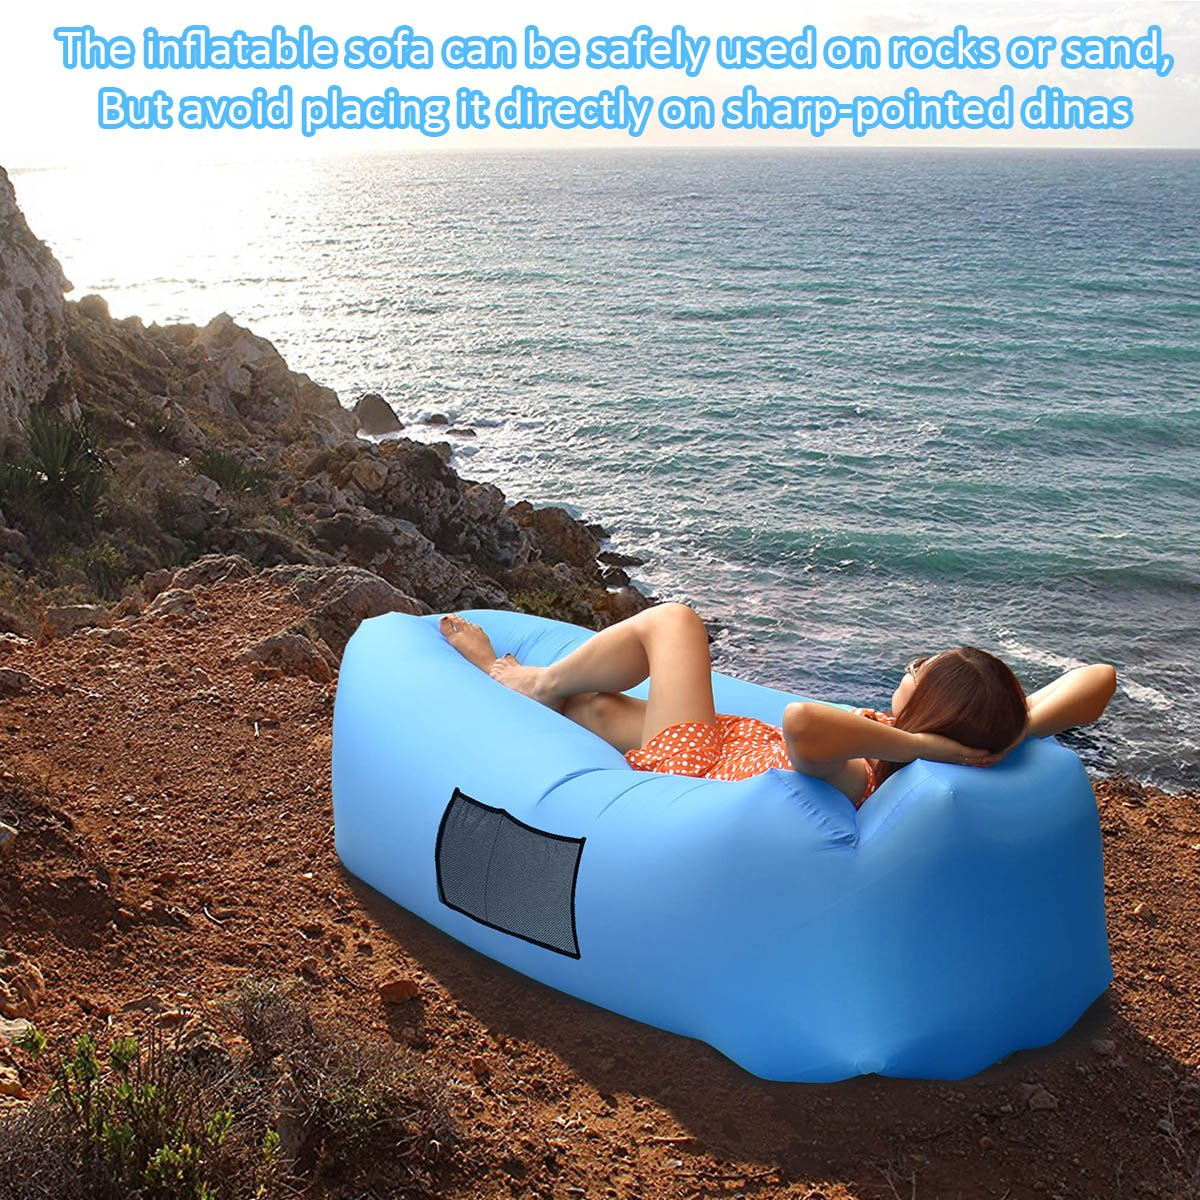 AngLink Inflatable Lounger, Portable Air Sofa Couch bed Nylon Waterproof Durable Foldable with Carry Bag for Indoor/Outdoor Lounging Summer Hiking ...